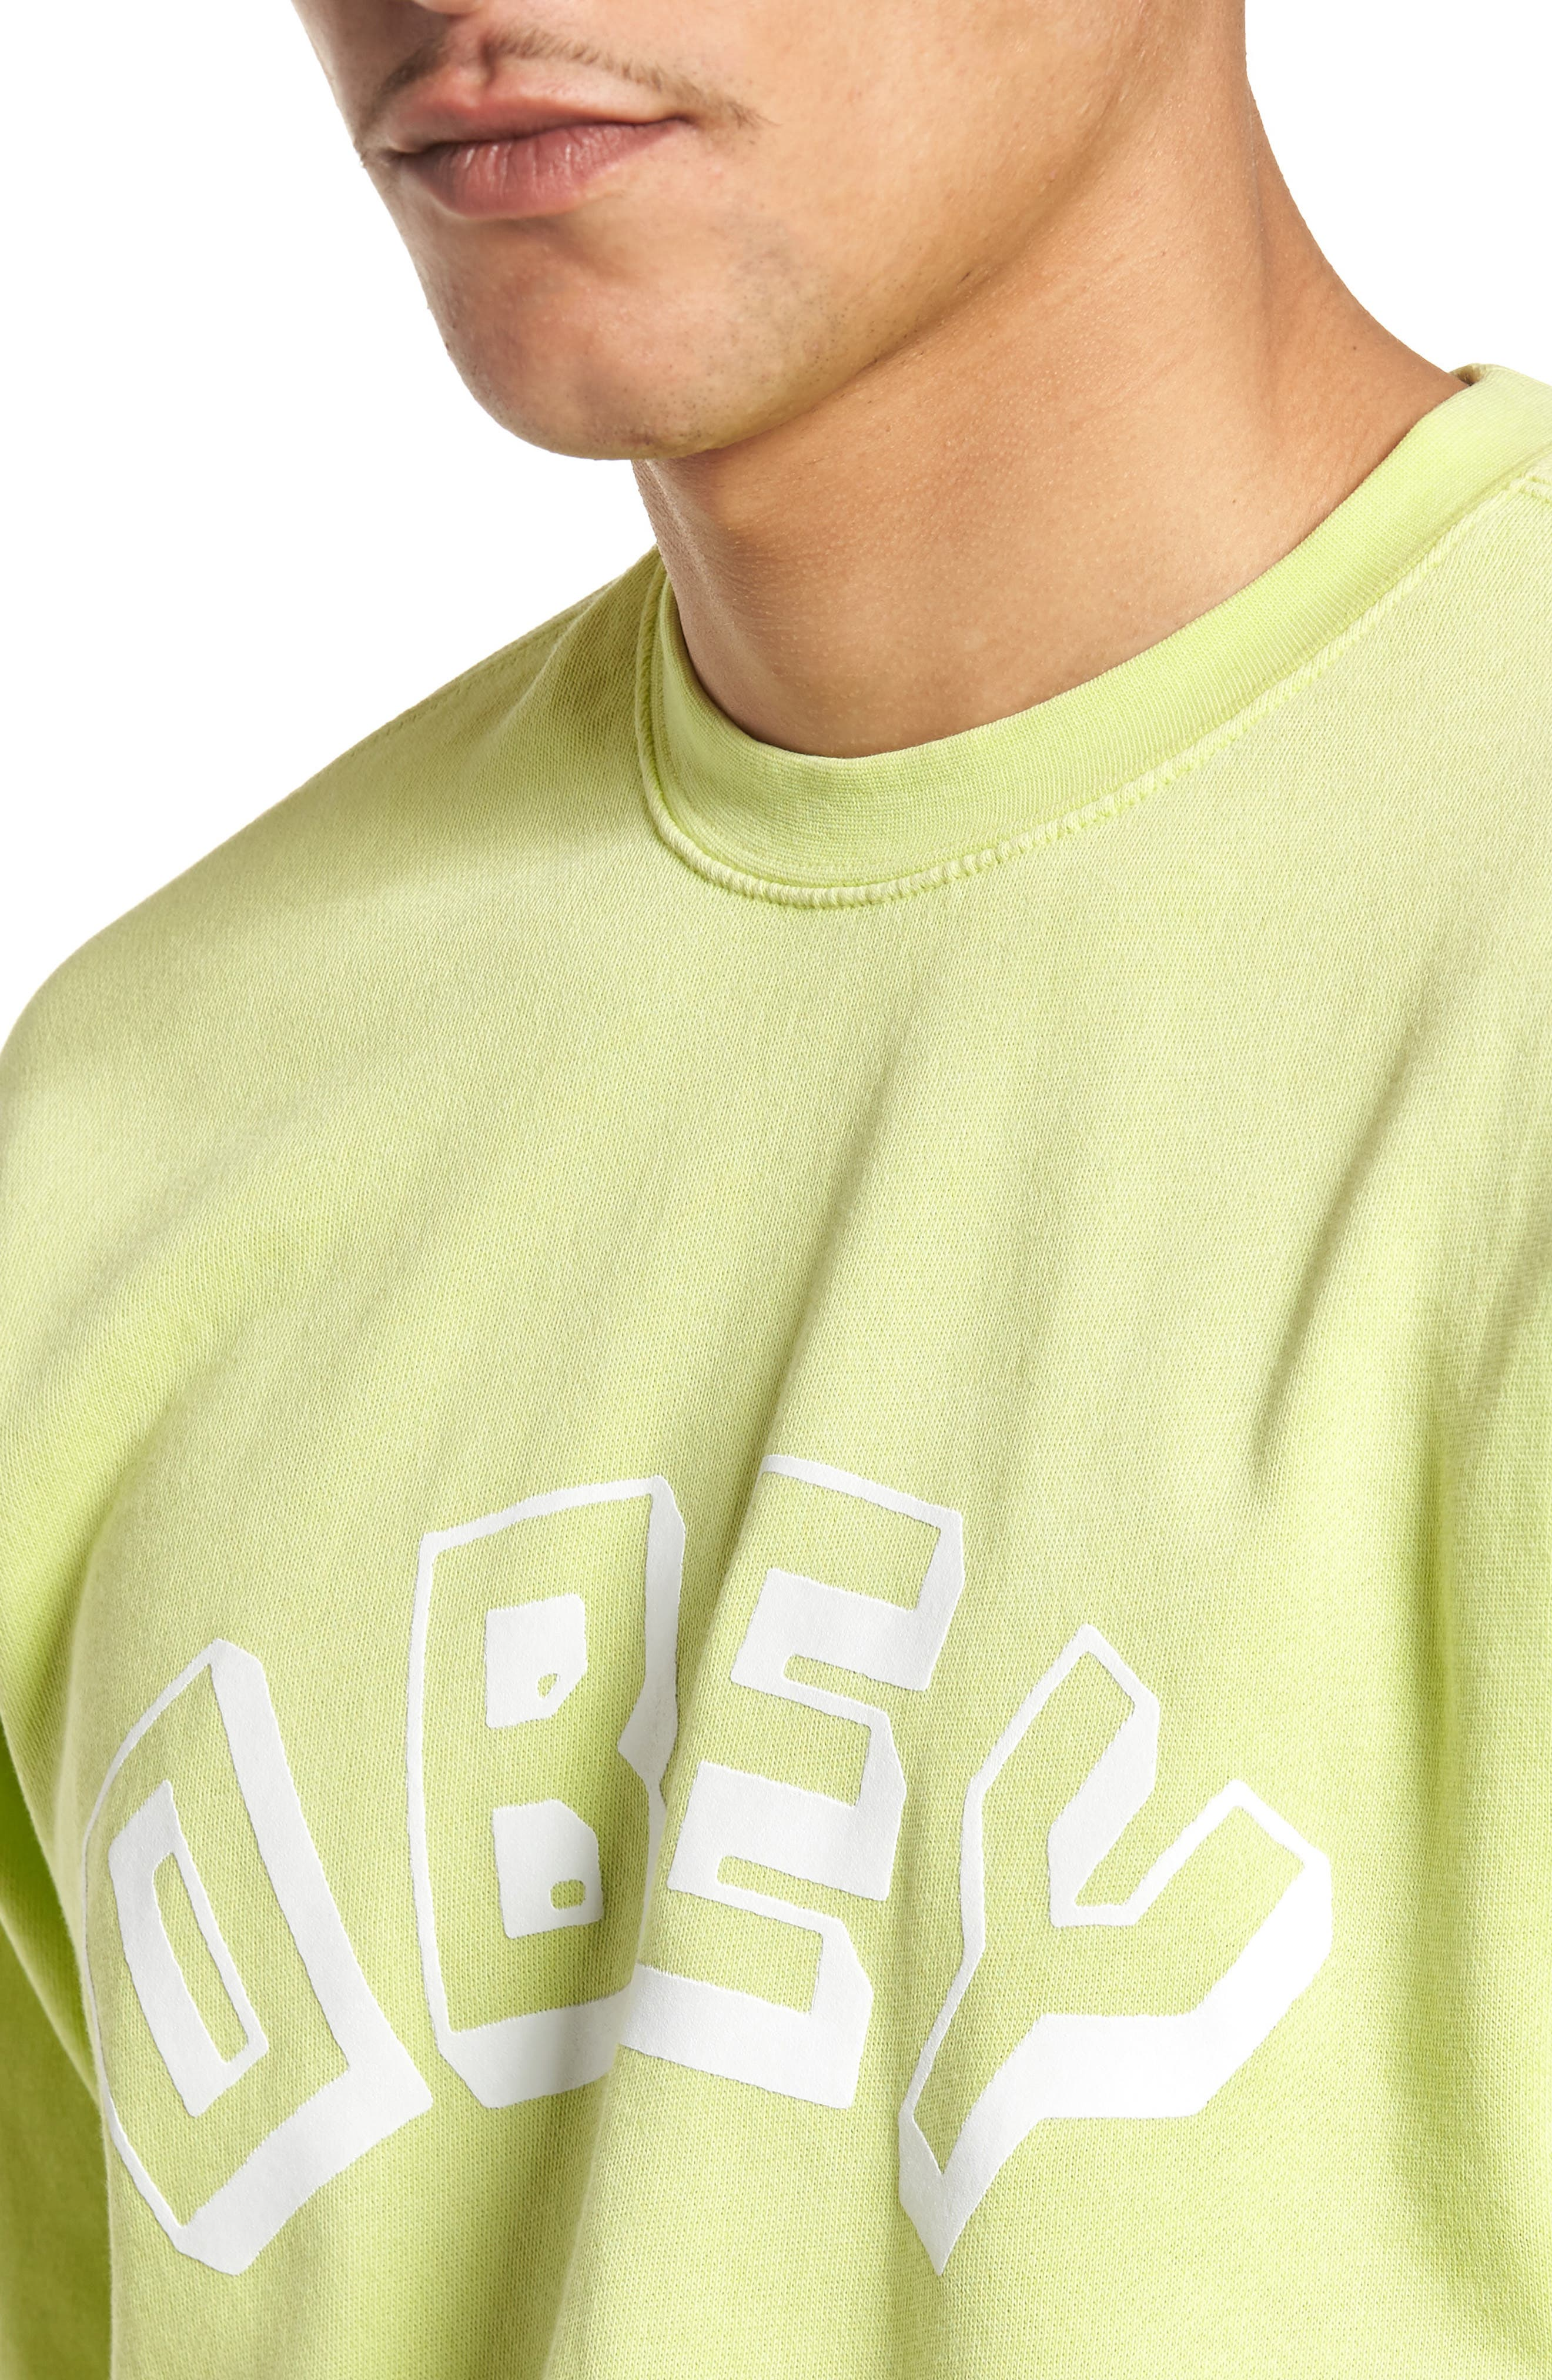 New World Sweatshirt,                             Alternate thumbnail 4, color,                             323